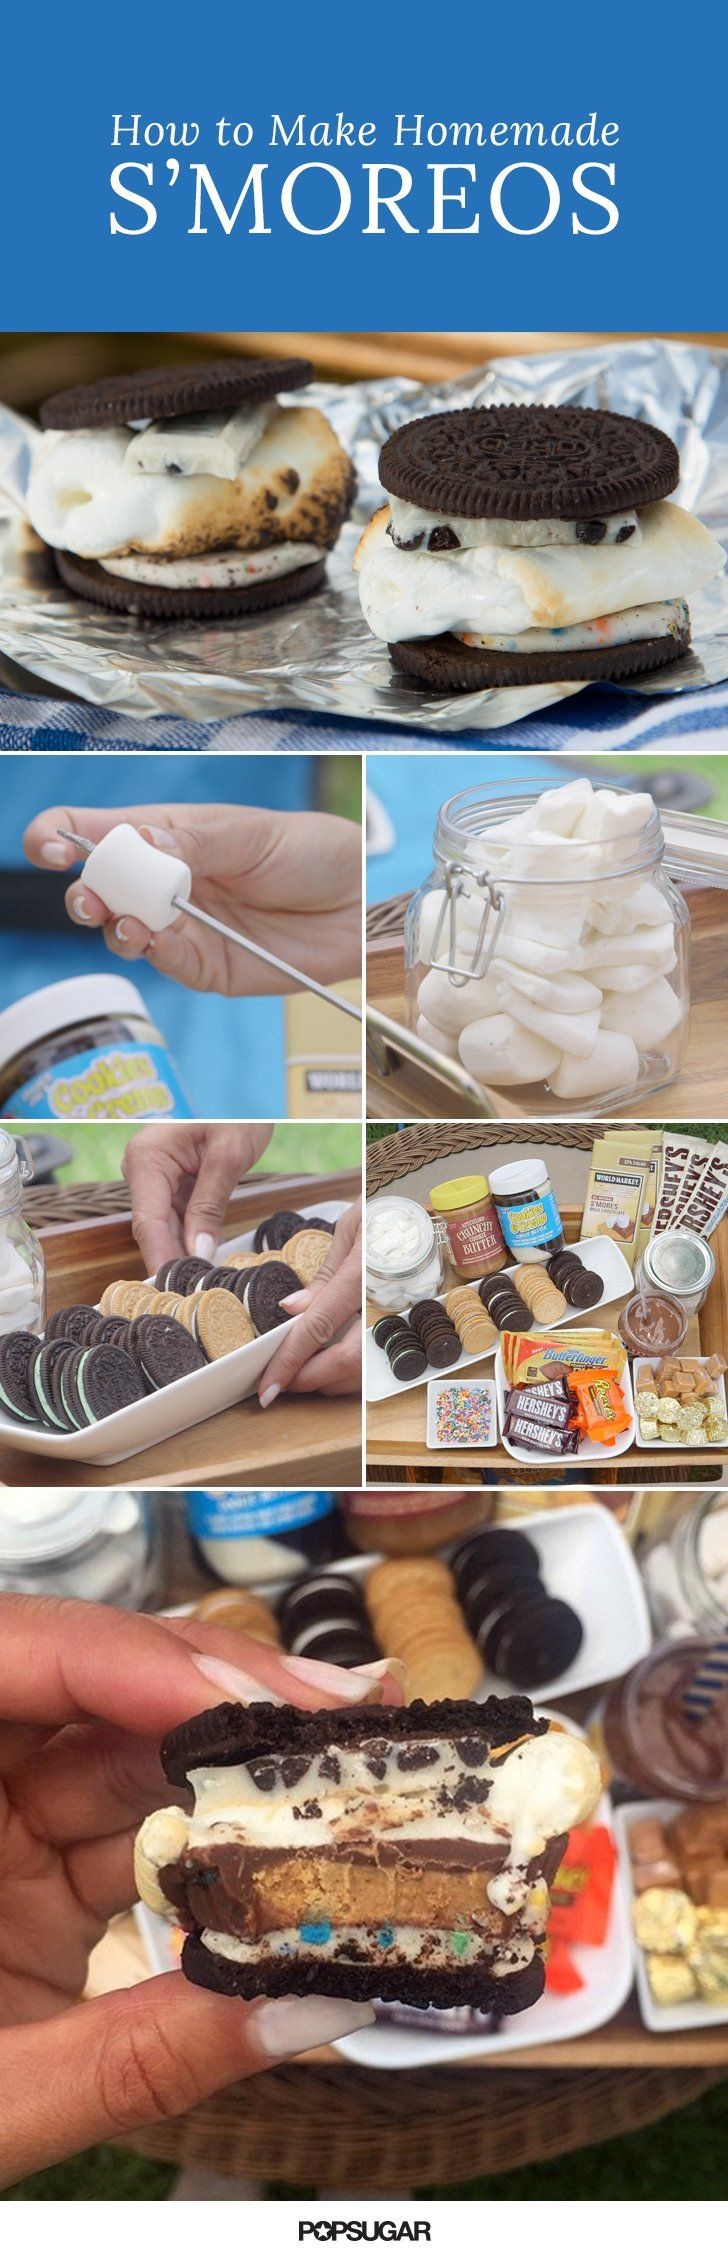 Graham crackers can and should be replaced in traditional s'mores to create s'mOreos.